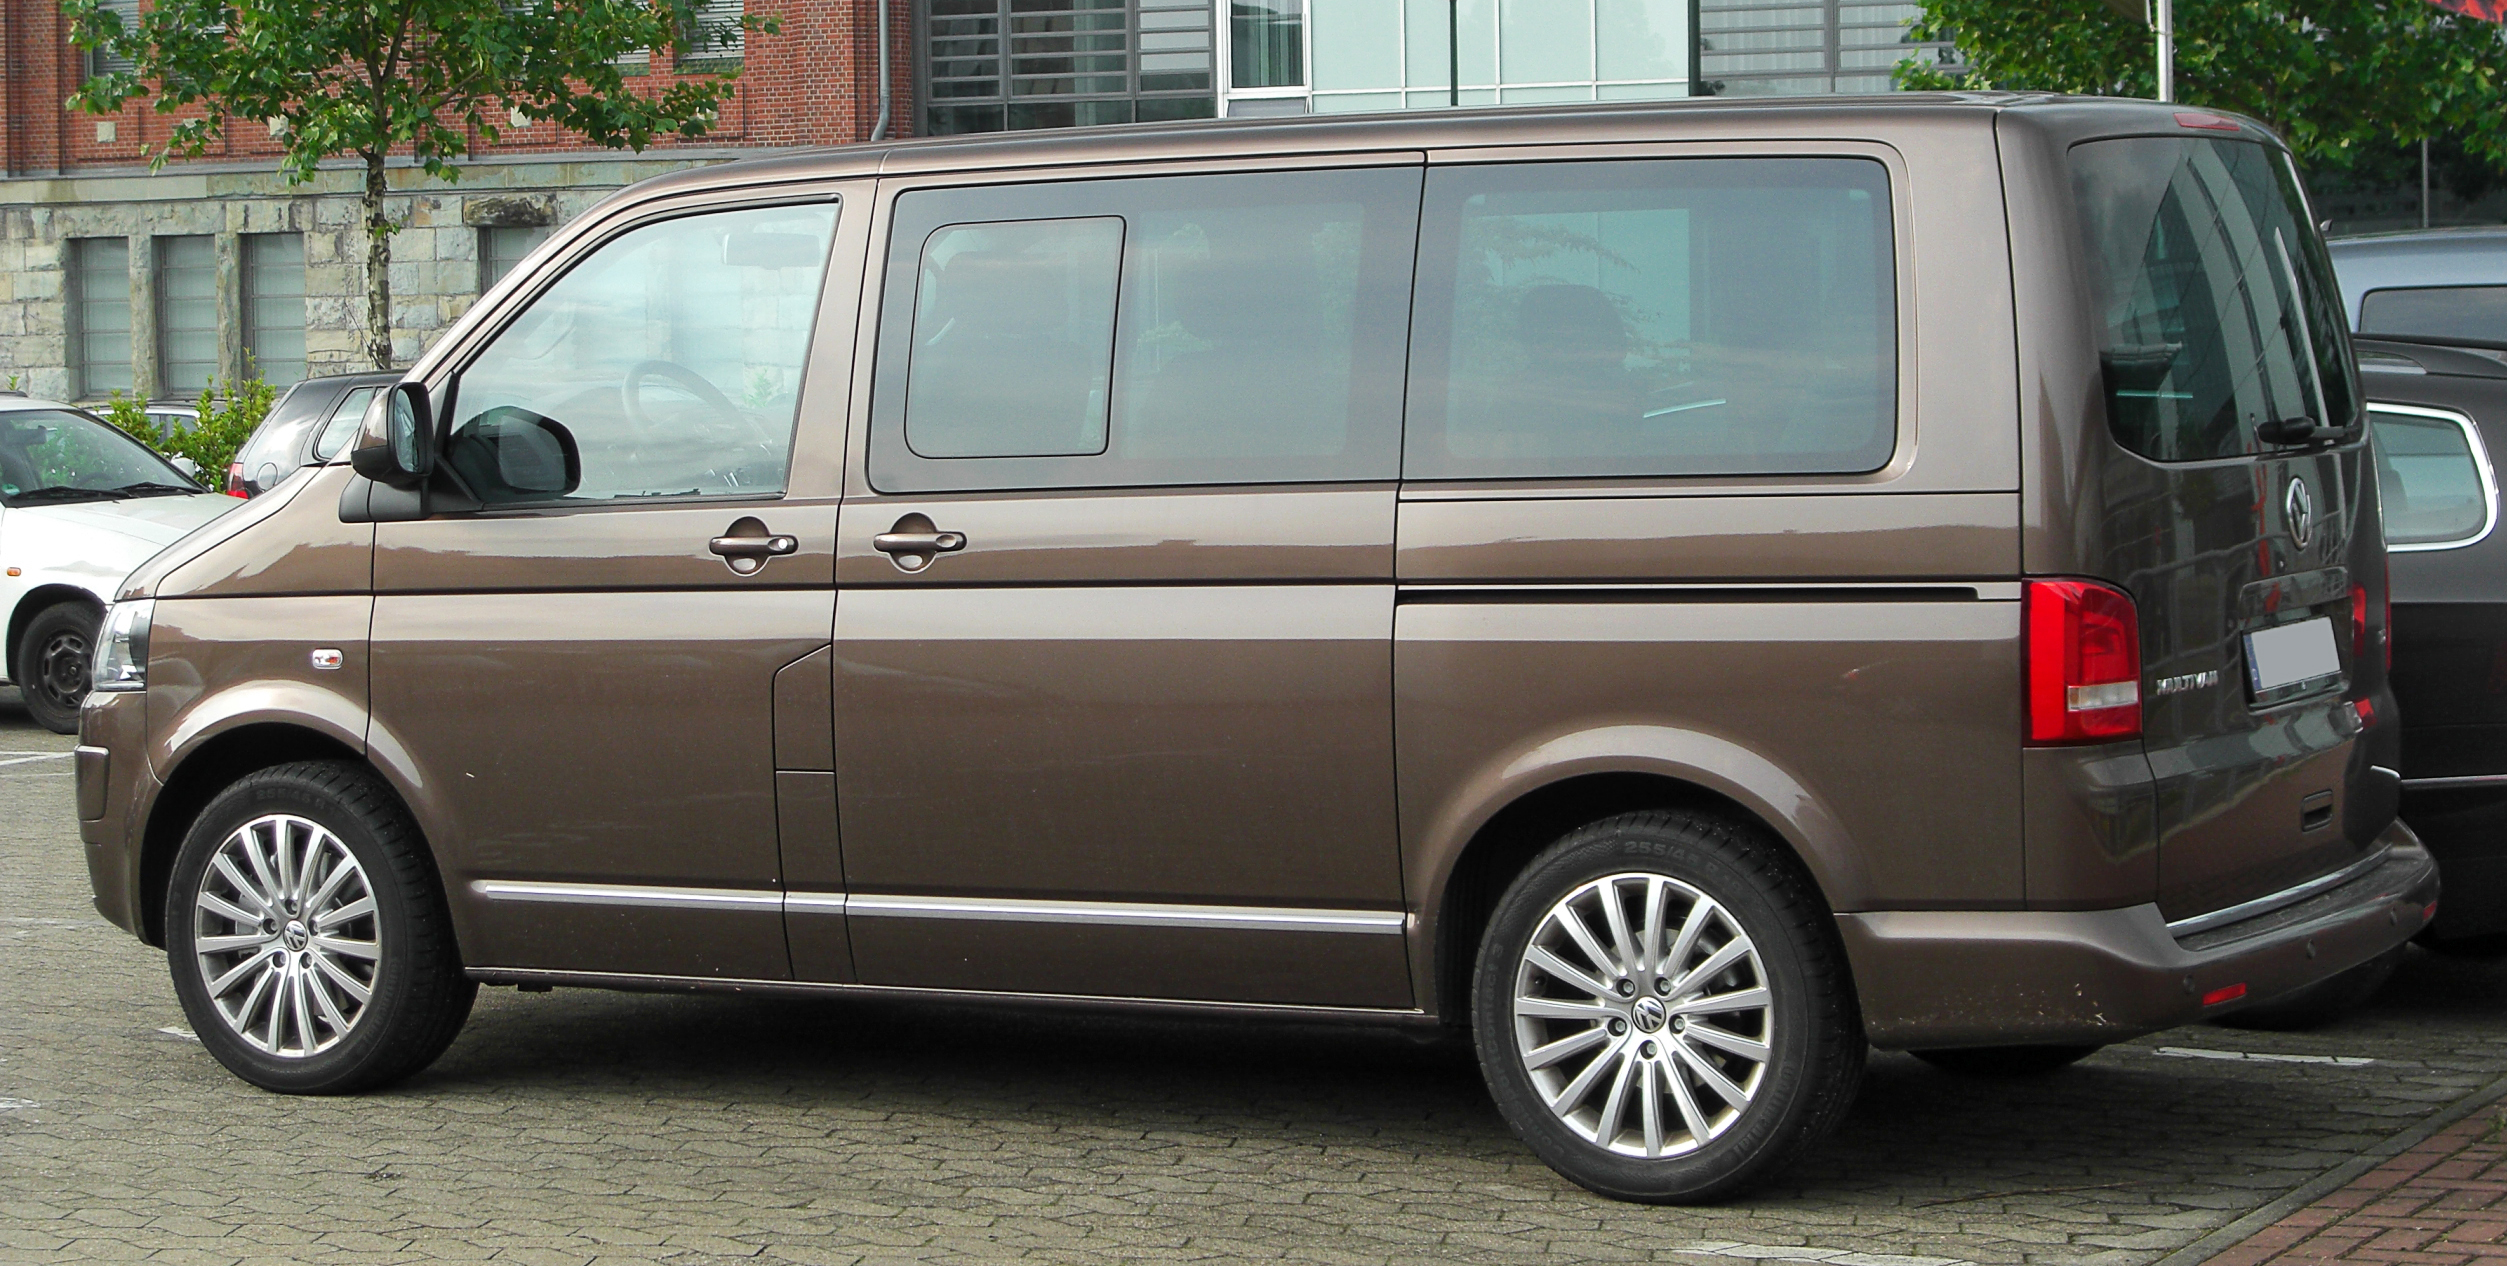 volkswagen multivan reviews volkswagen multivan car reviews. Black Bedroom Furniture Sets. Home Design Ideas